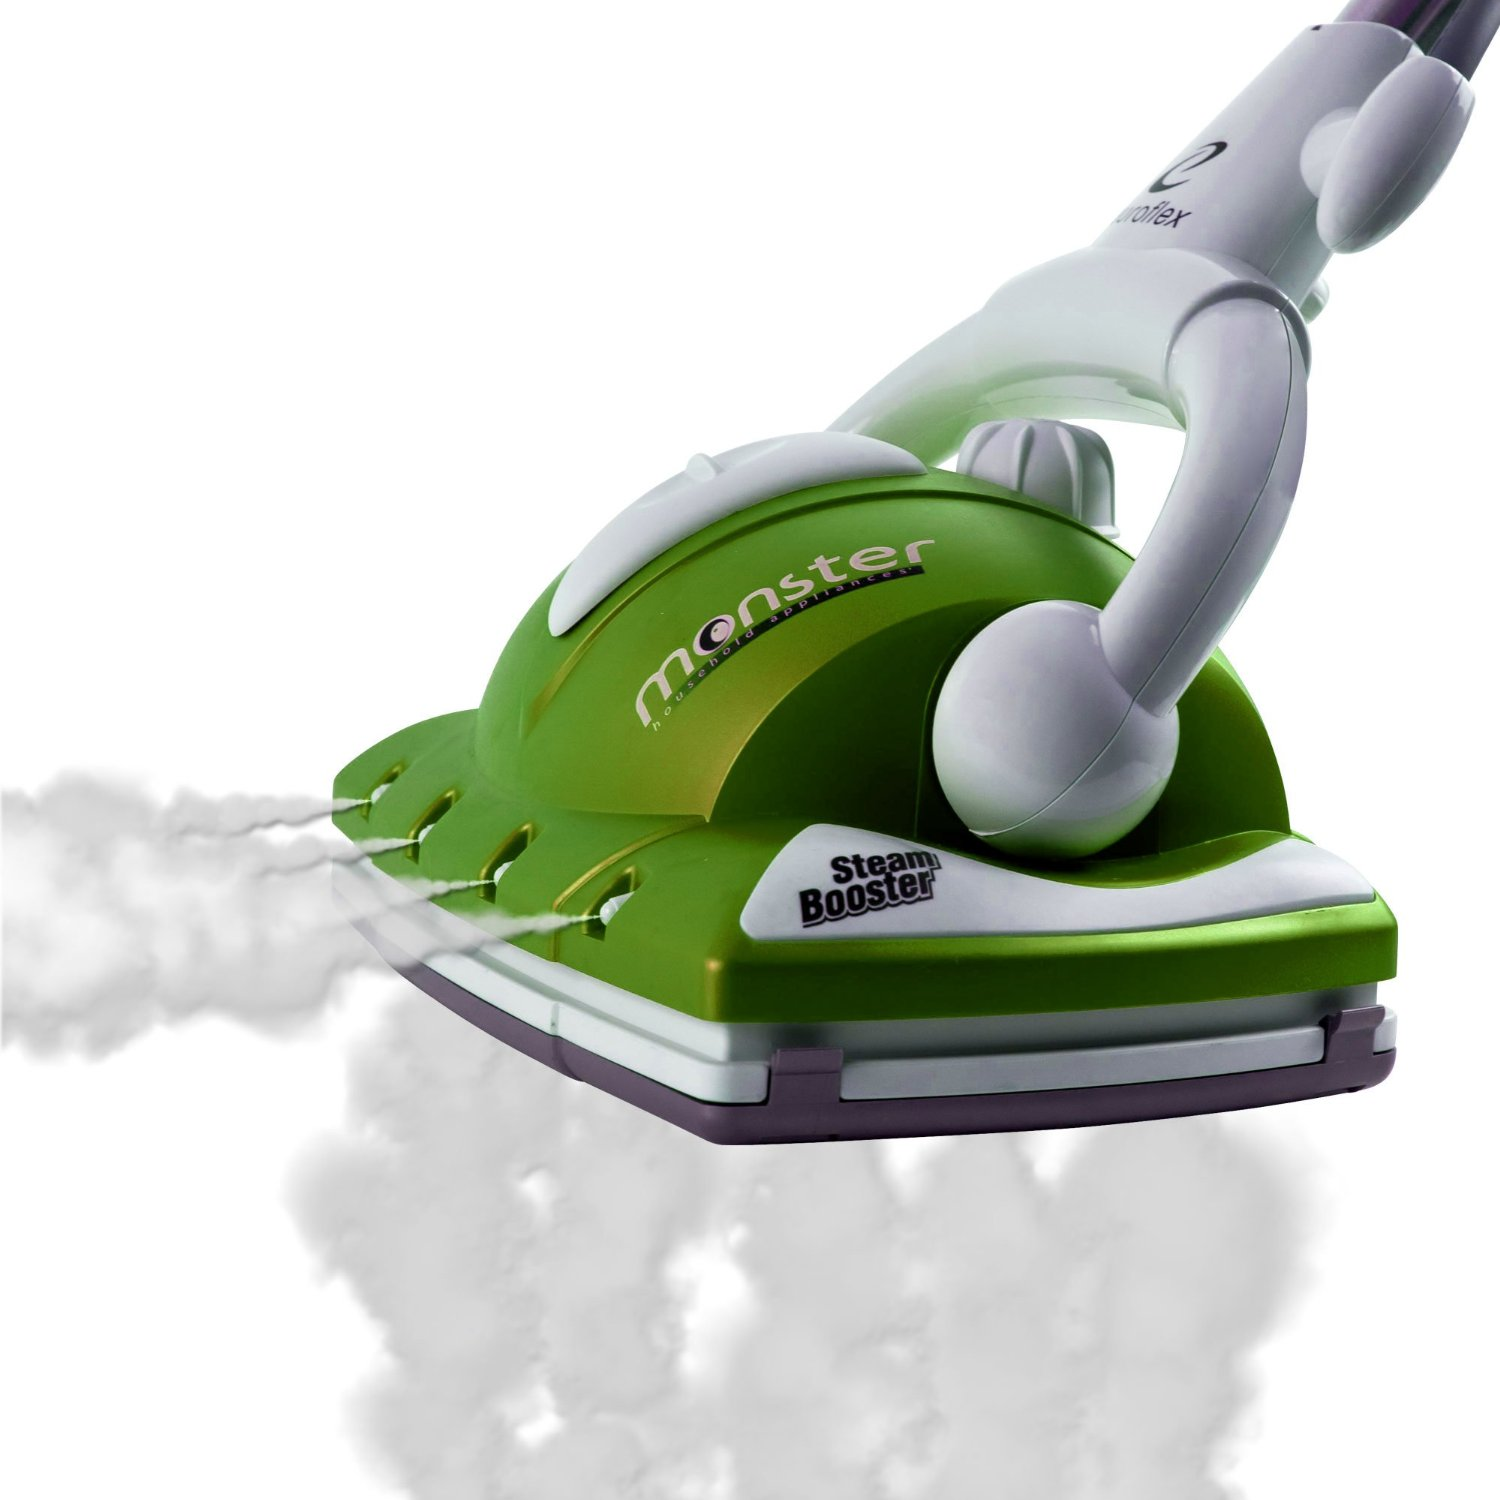 Euroflex Monster Steam Jet II 1200w Disinfecting Floor Steam Cleaner